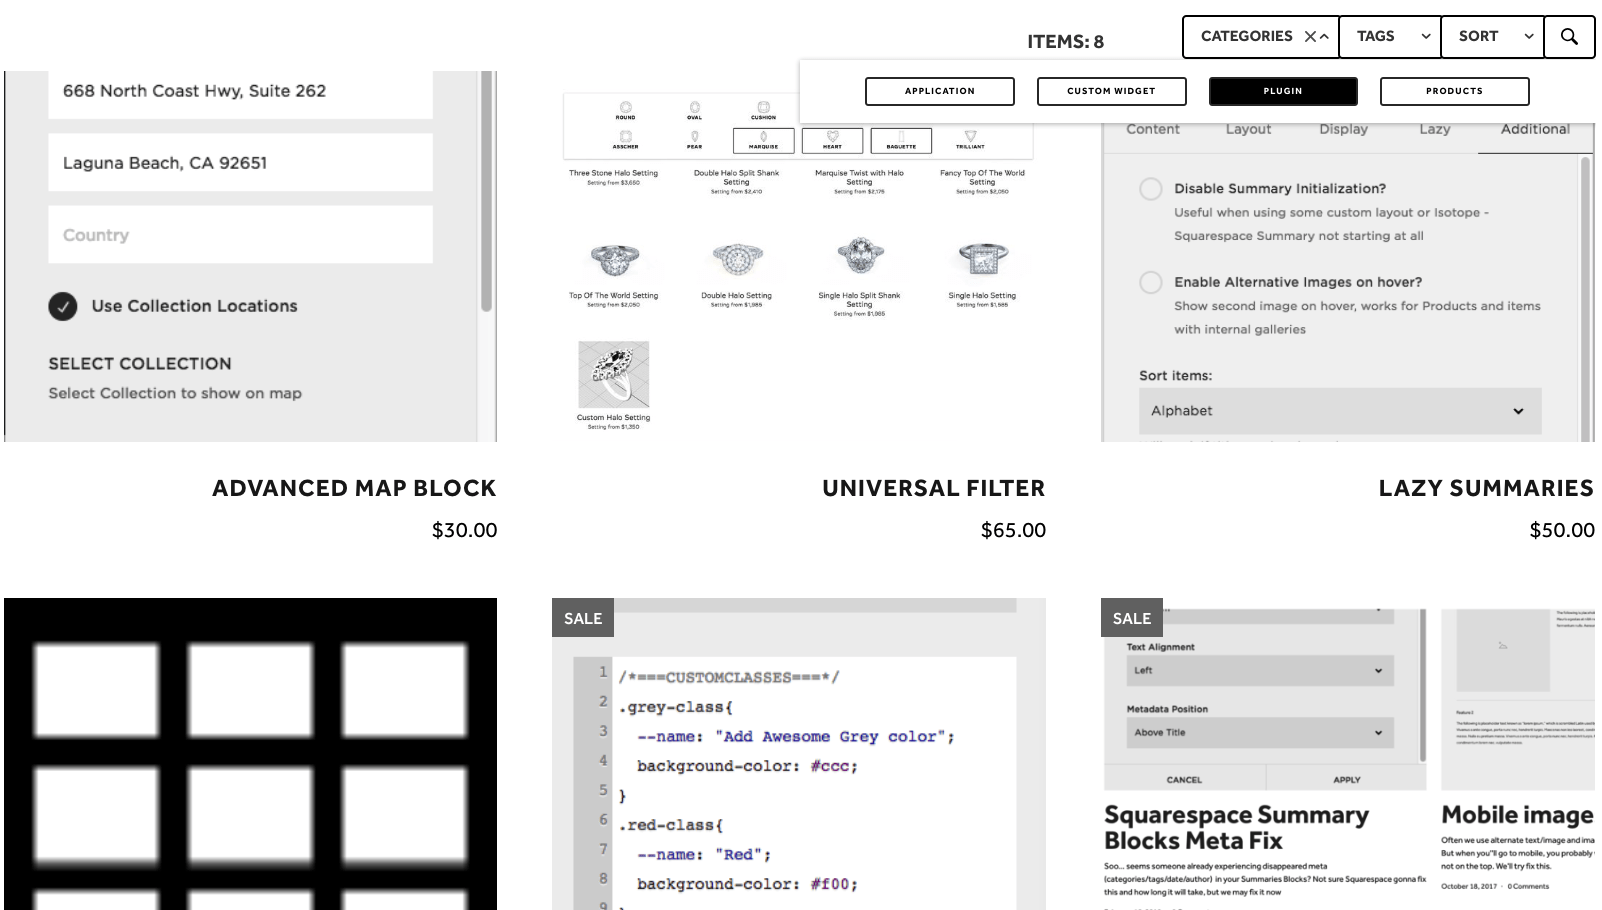 How to add custom fonts to Squarespace site